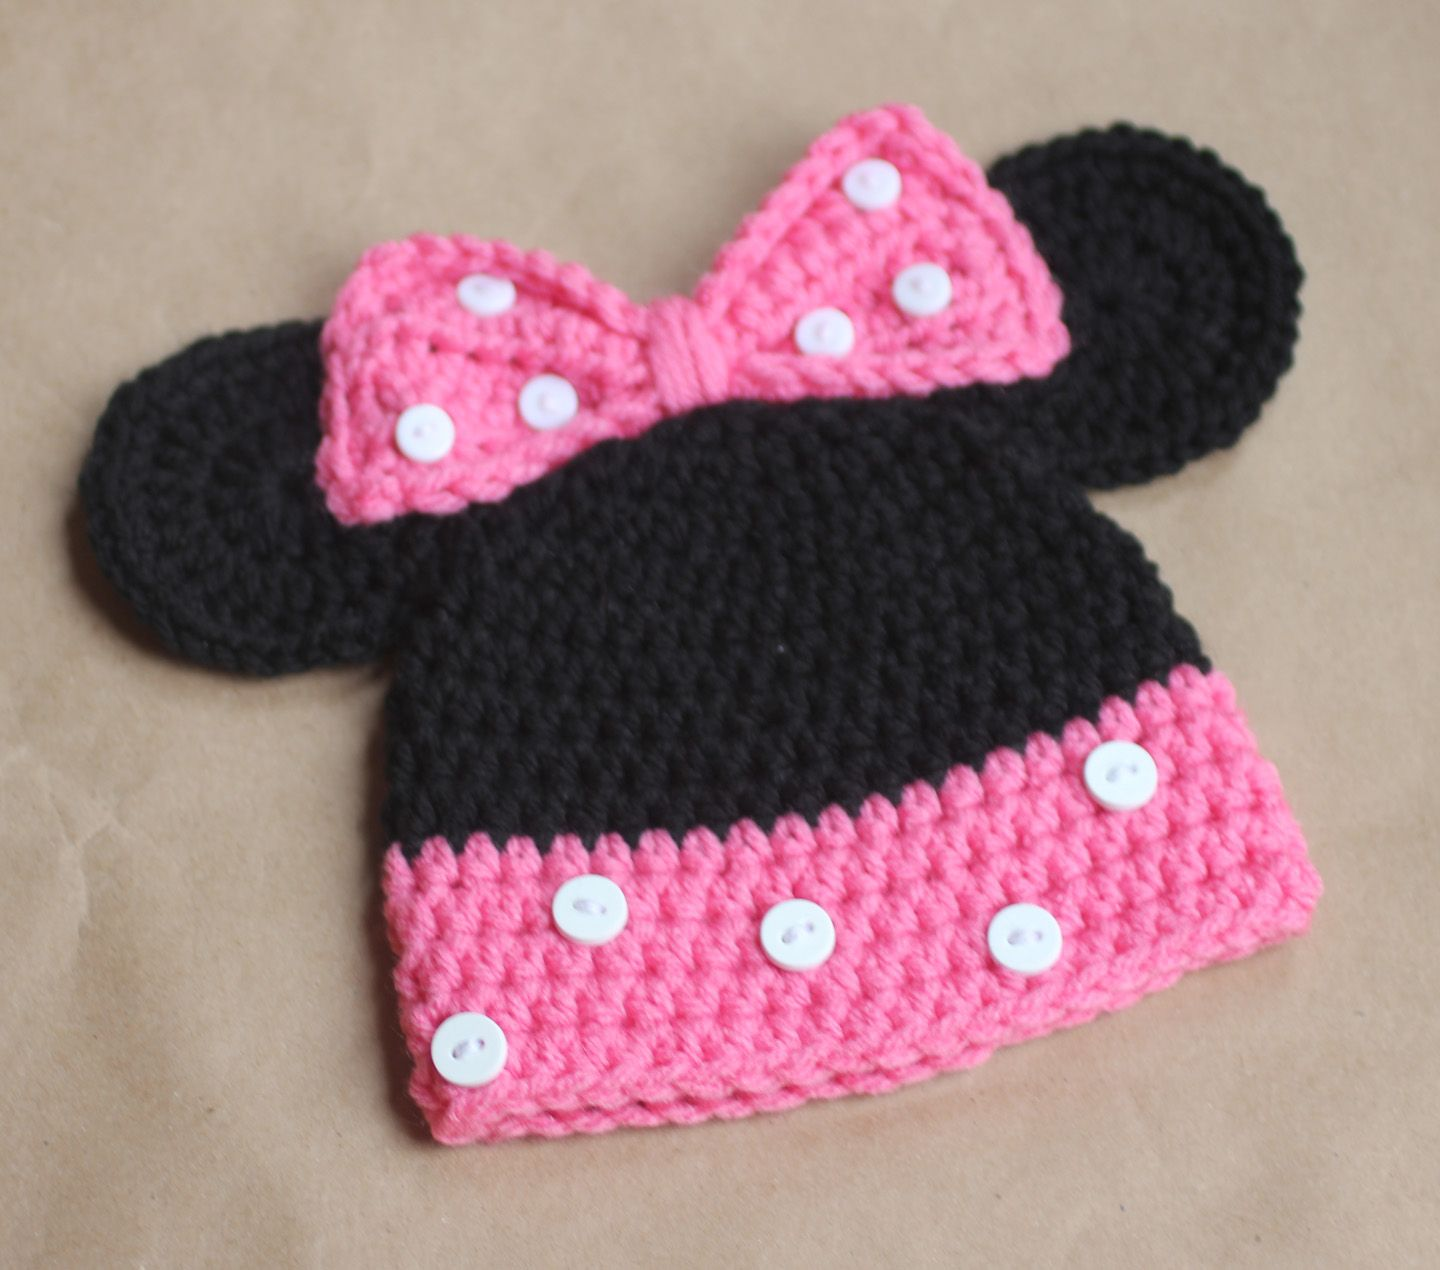 Mickey and Minnie Mouse Crochet Hat Pattern   Crochet hats   booties ... c5ab557c922